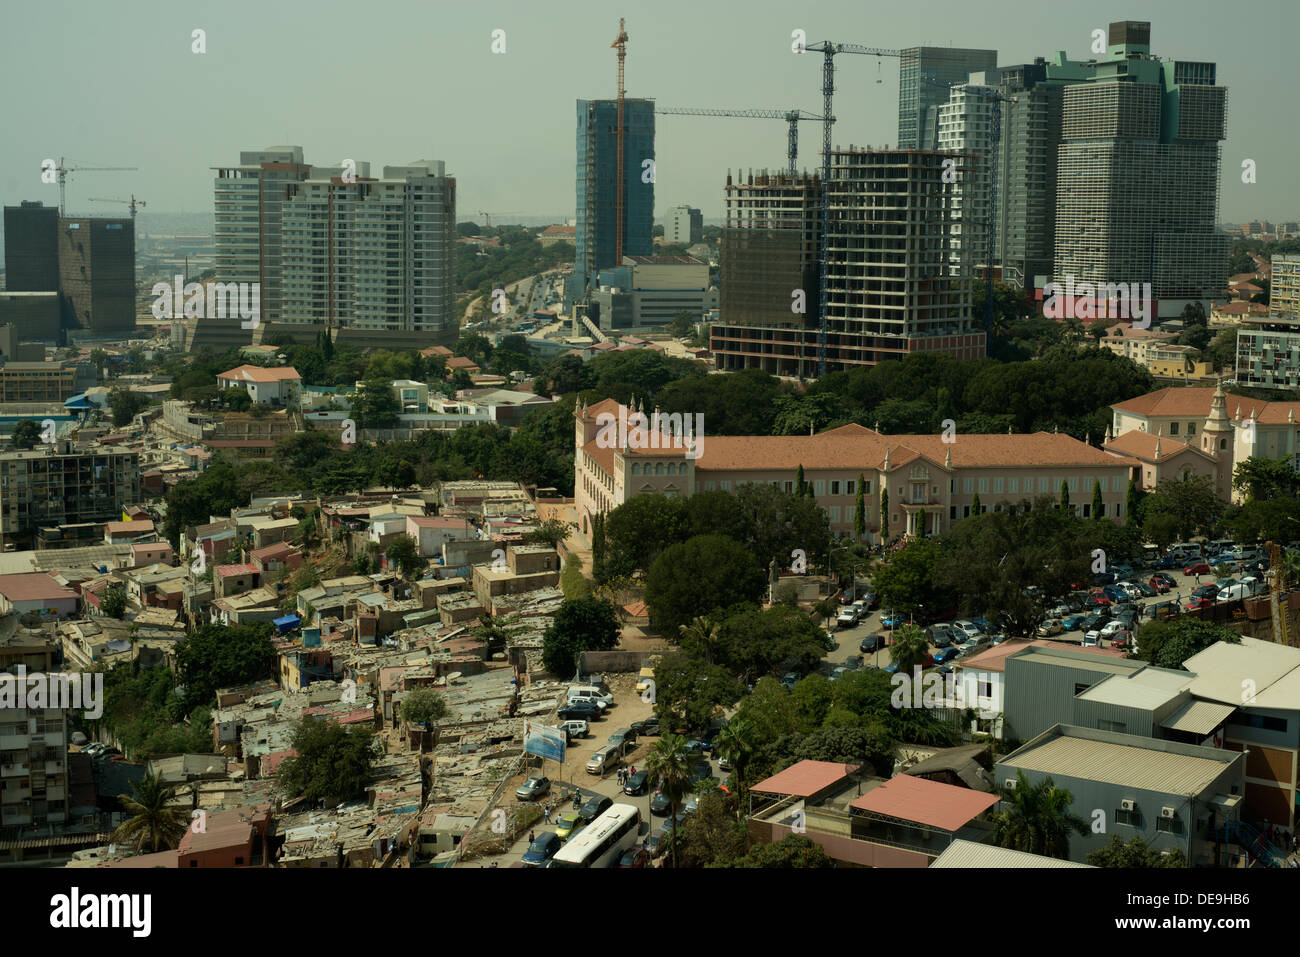 New offices and hotels being built in Luanda, Angola - Stock Image